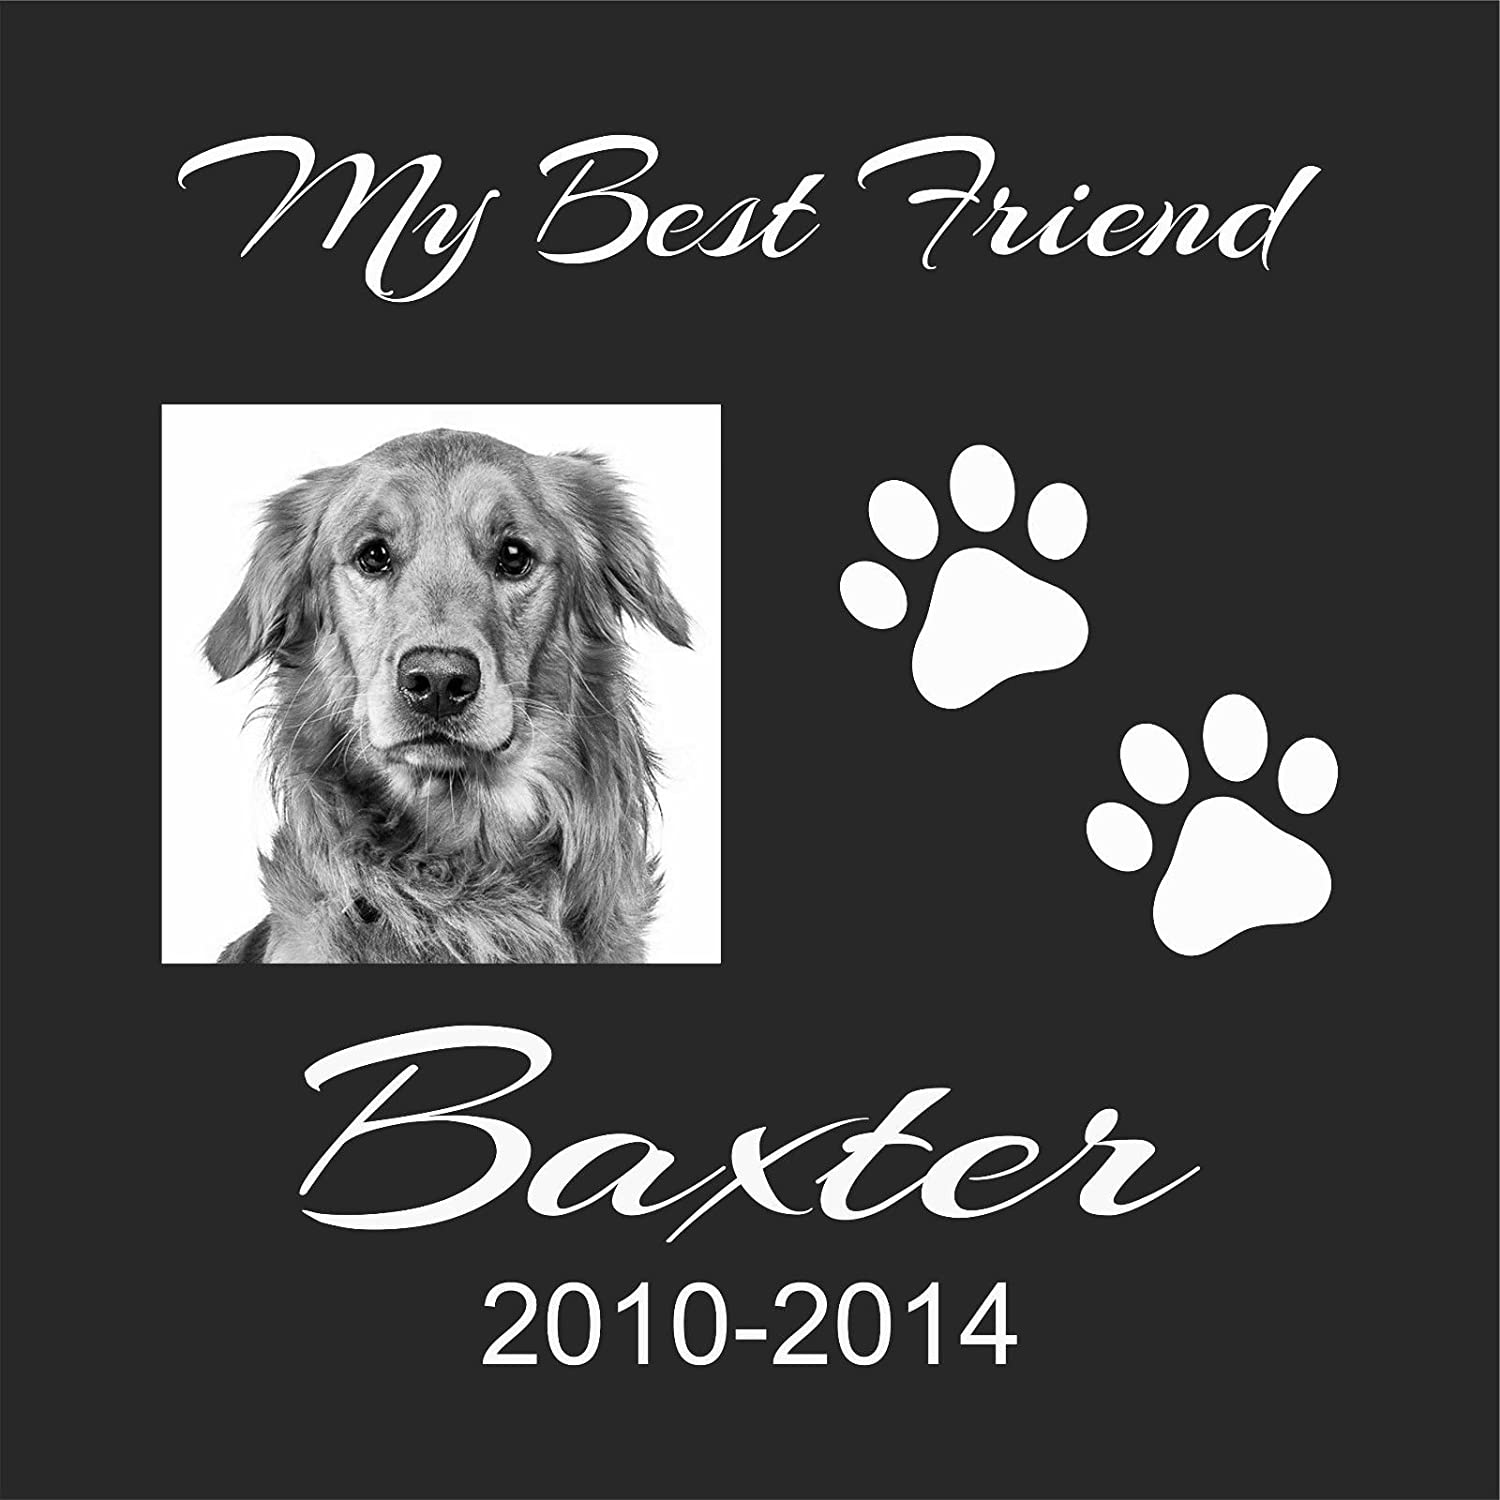 Personalised Pet Stone Memorial Grave Marker Granite Marker Dog Cat Horse Bird Human 12  X 12  Personalized Boxer Chow Chow